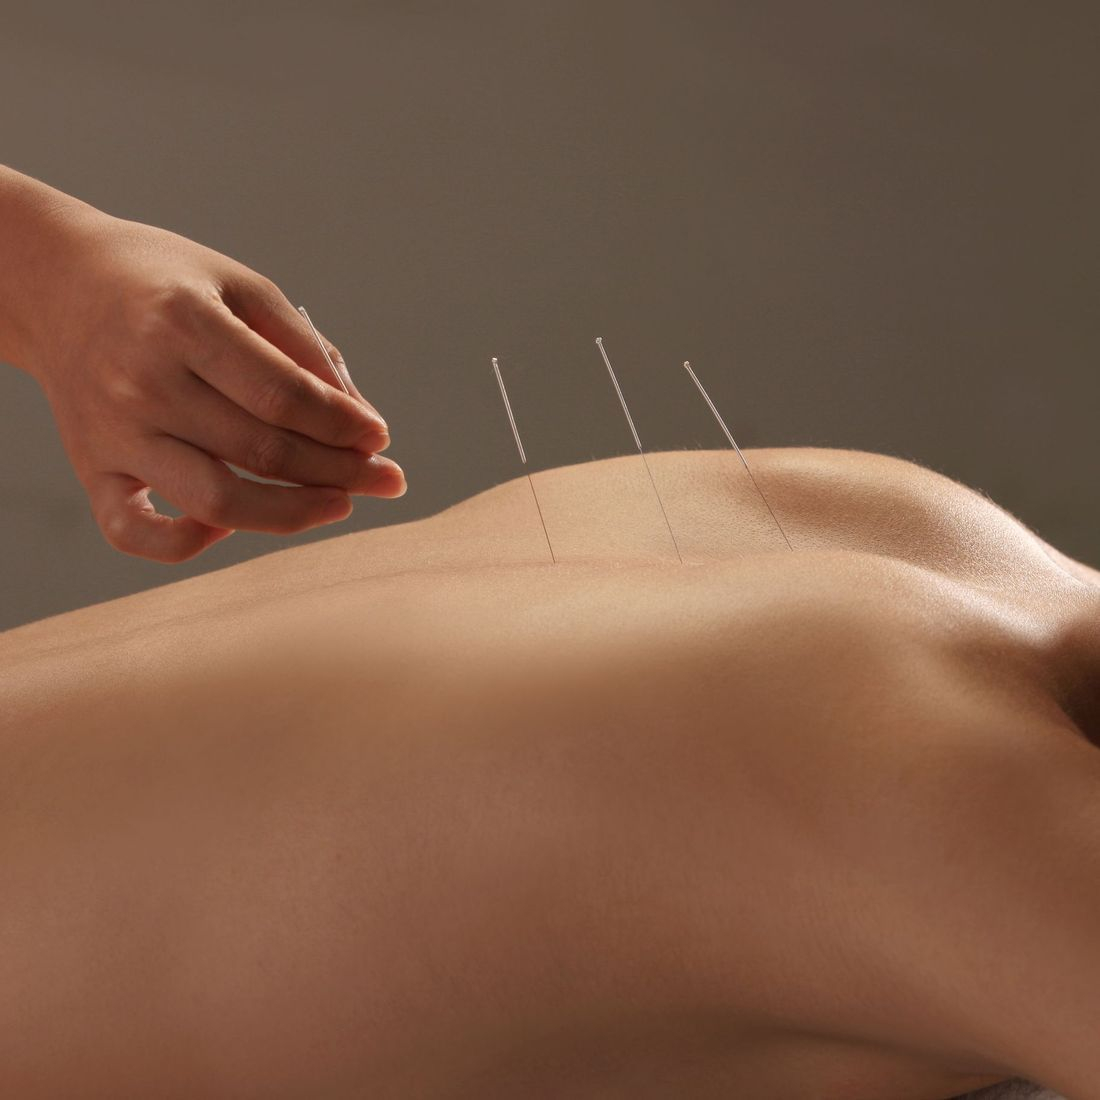 pain, rehabilitation, back pain, Portsmouth, physiotherapy, physio, sports injuries, accupuncture, pilates